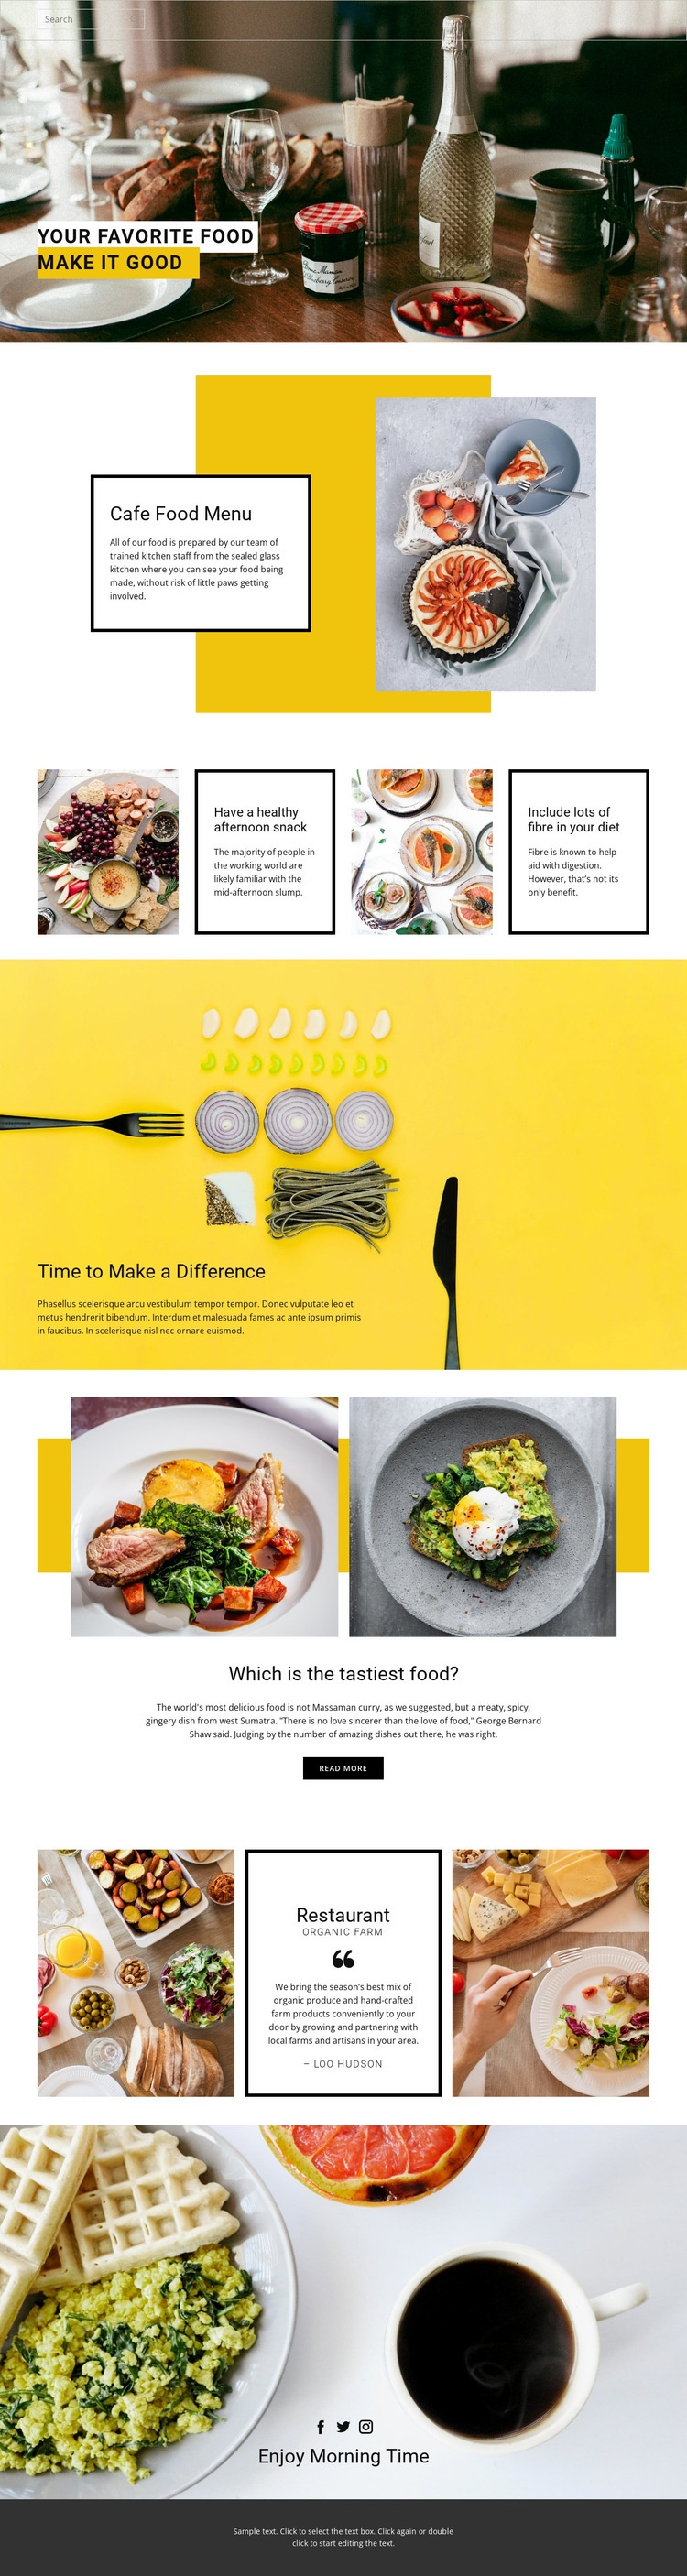 Cook your favorite food Html Code Example